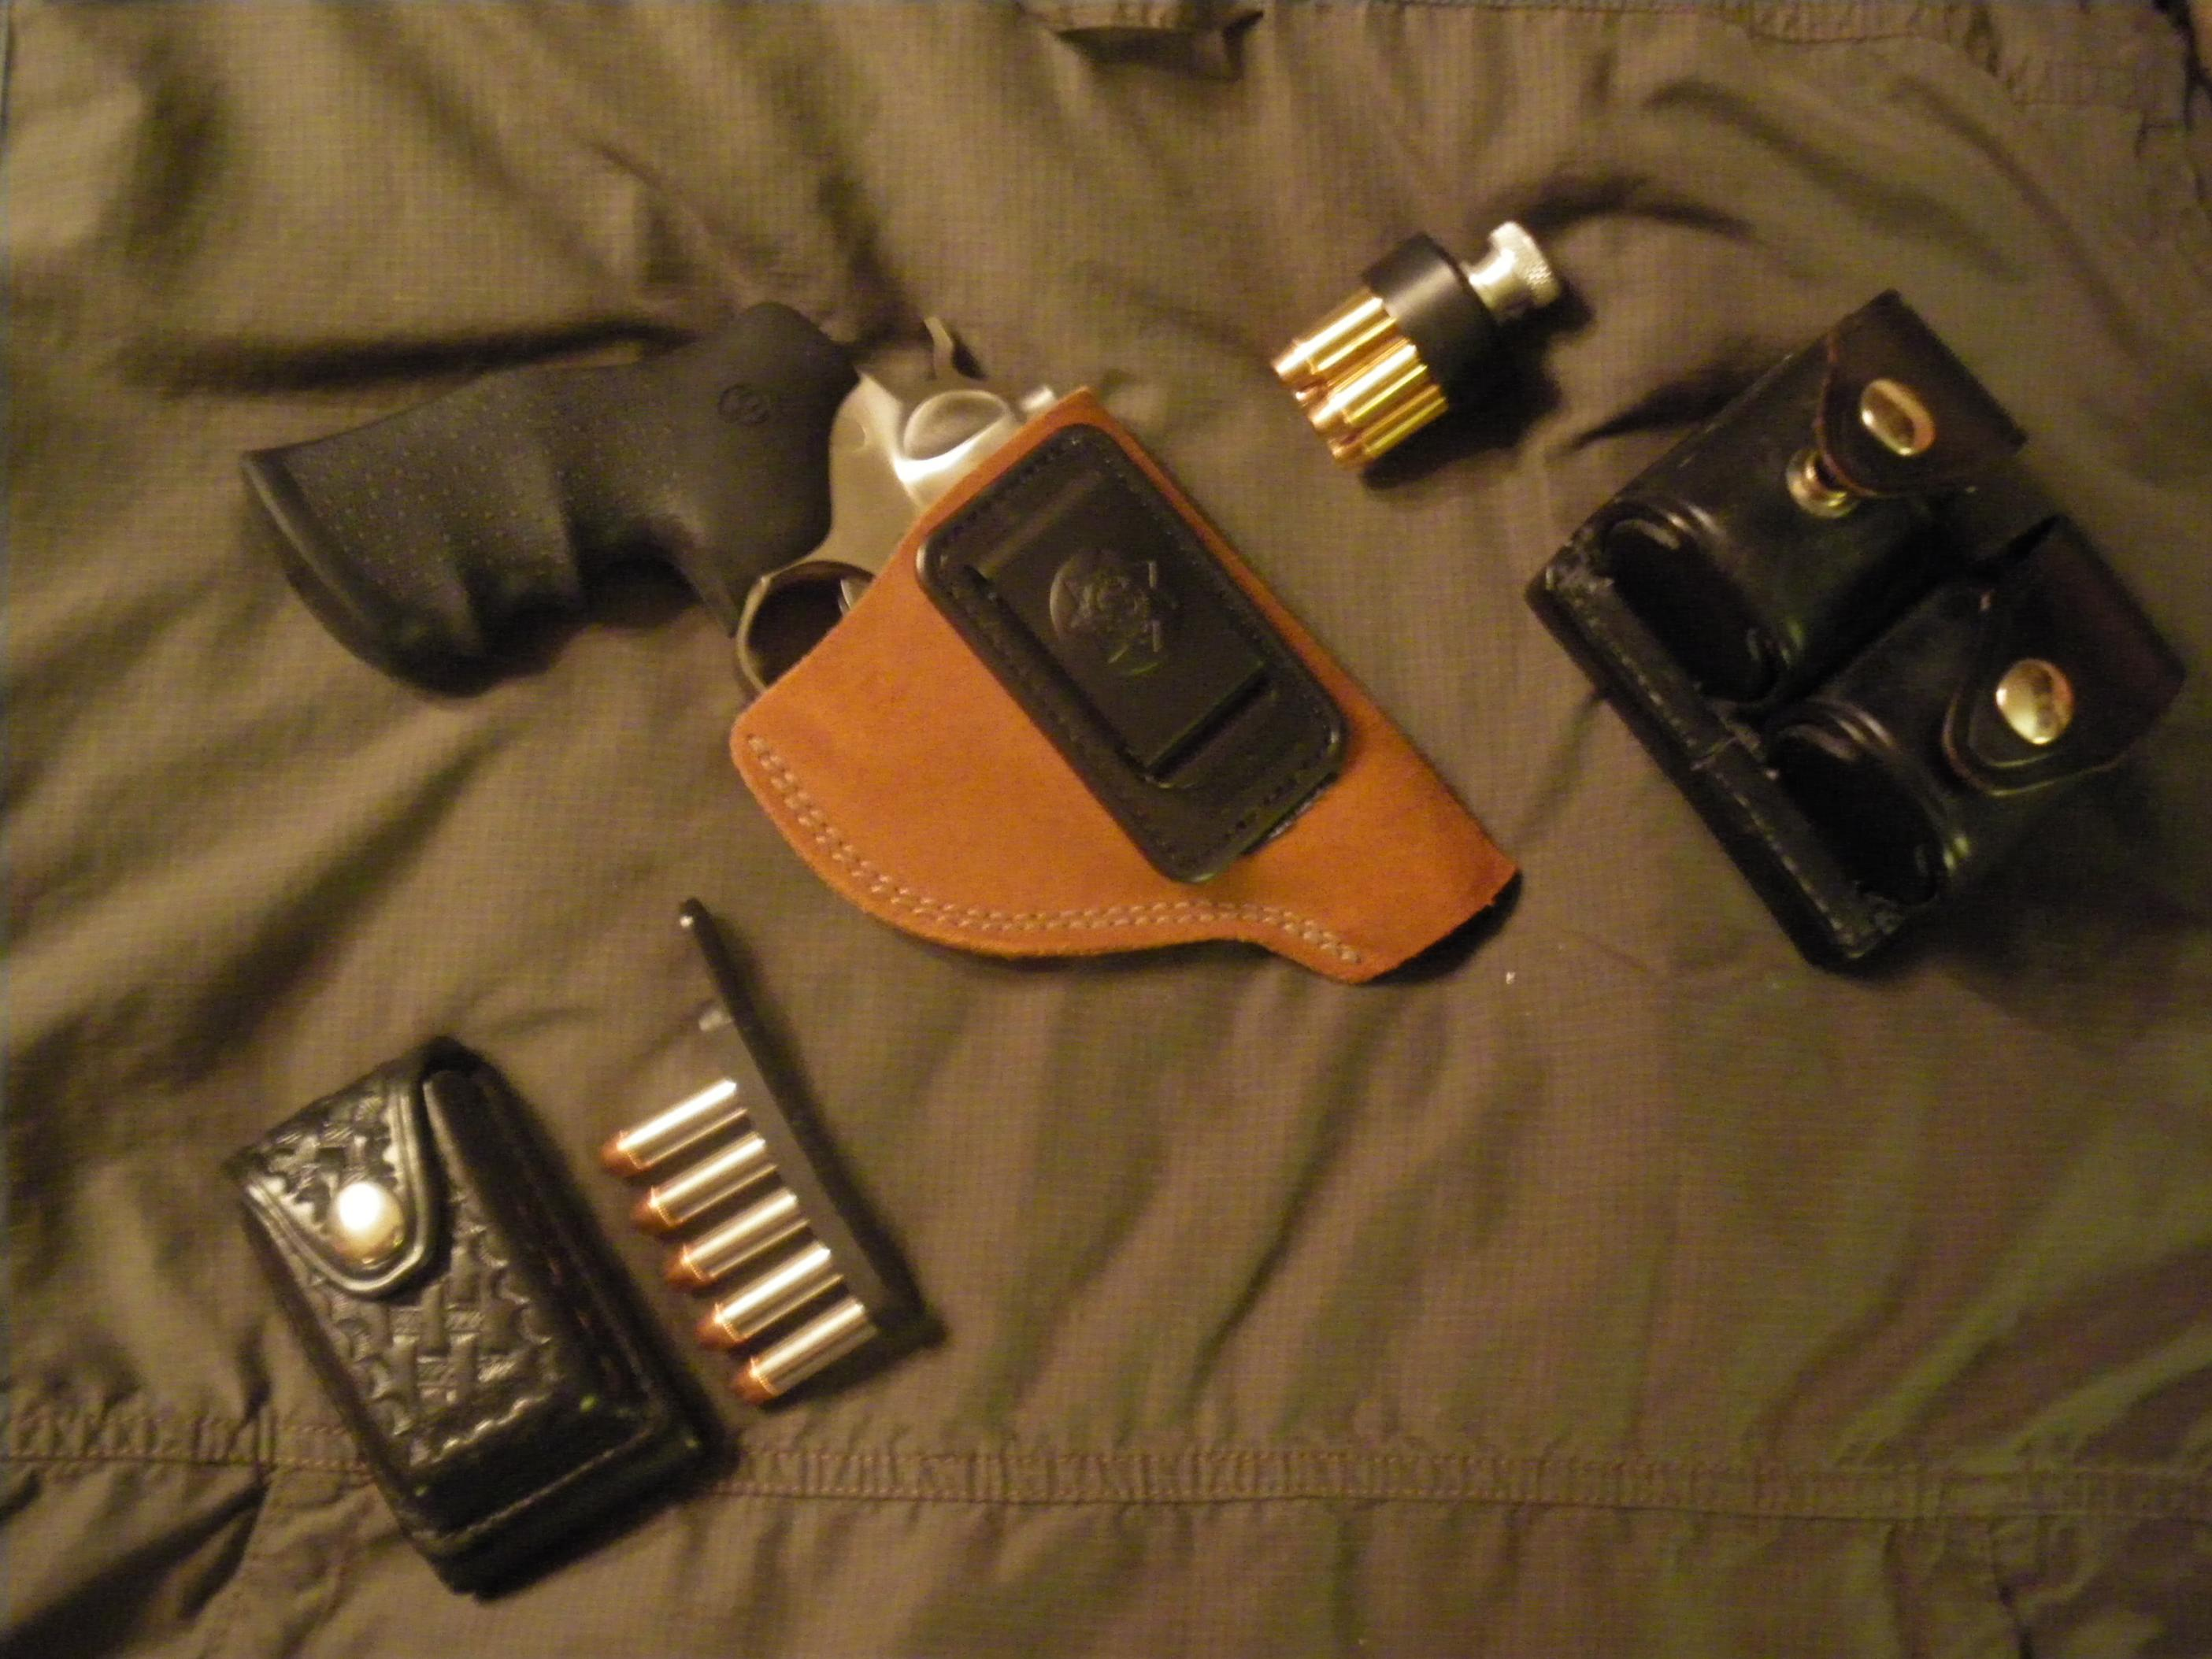 A New Sixgun and some old Don Hume leather....-2012-08-19-08.08.03.jpg